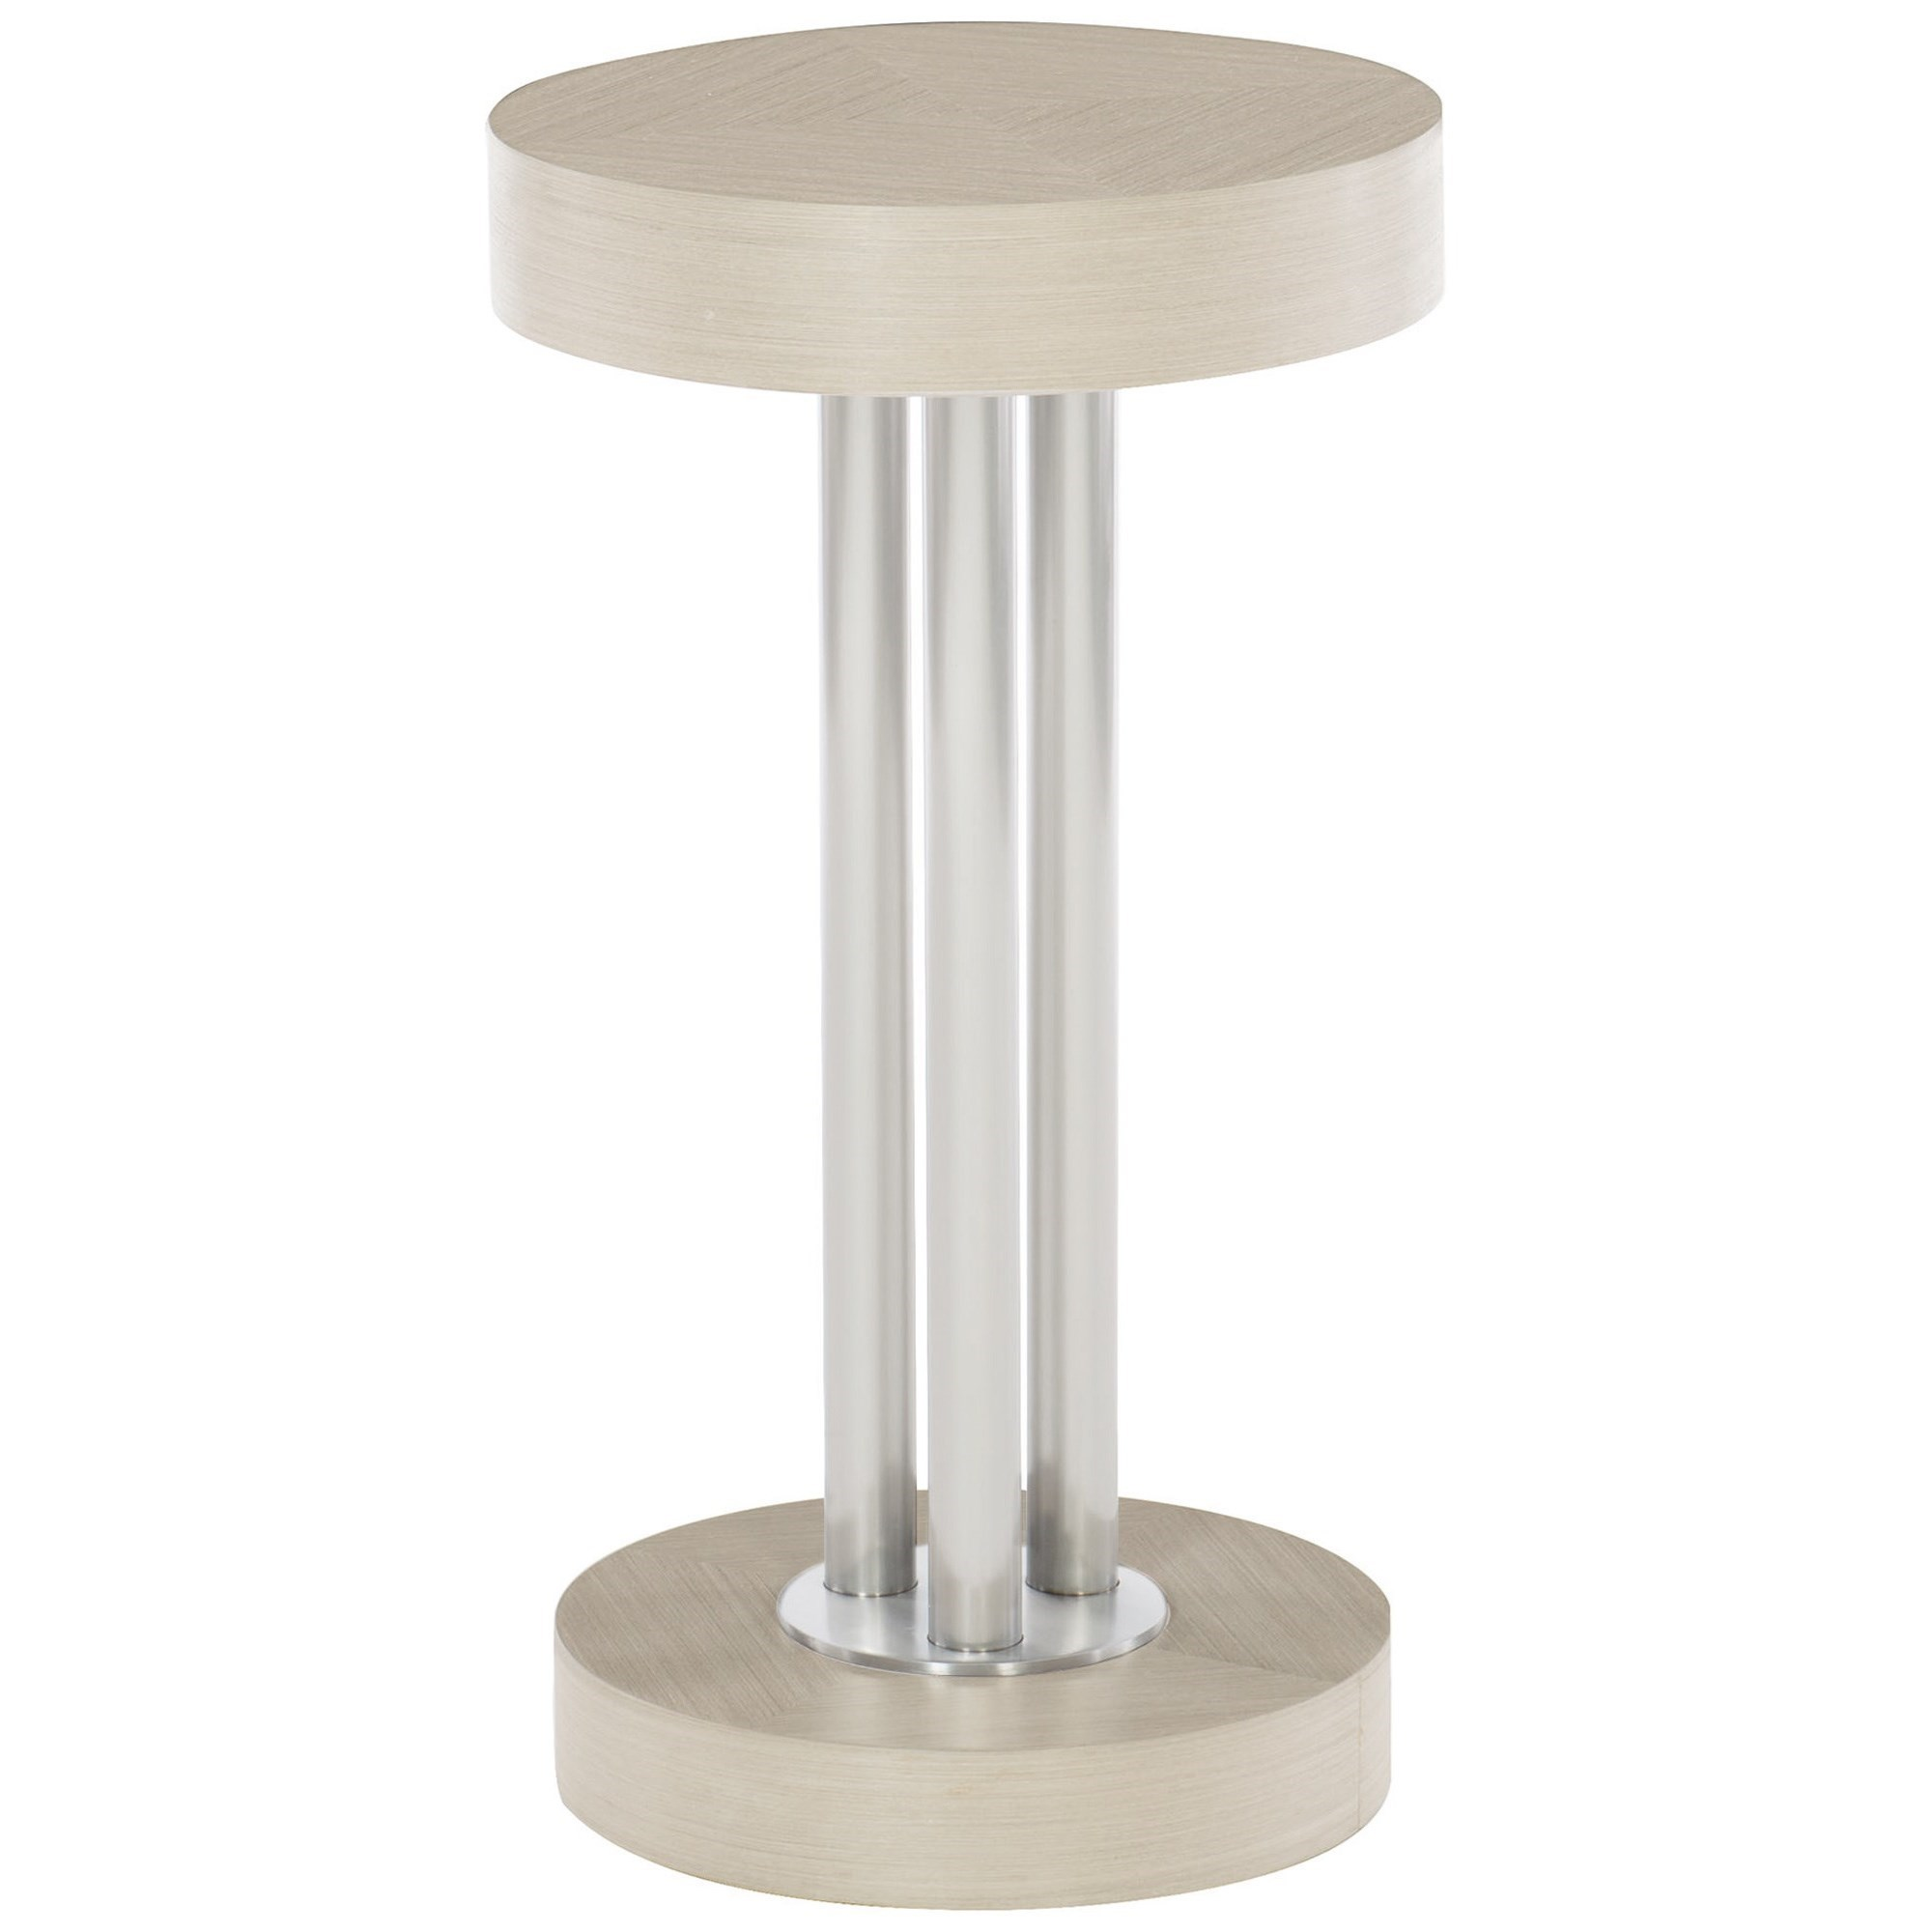 Axiom Round Chairside Table by Bernhardt at Baer's Furniture